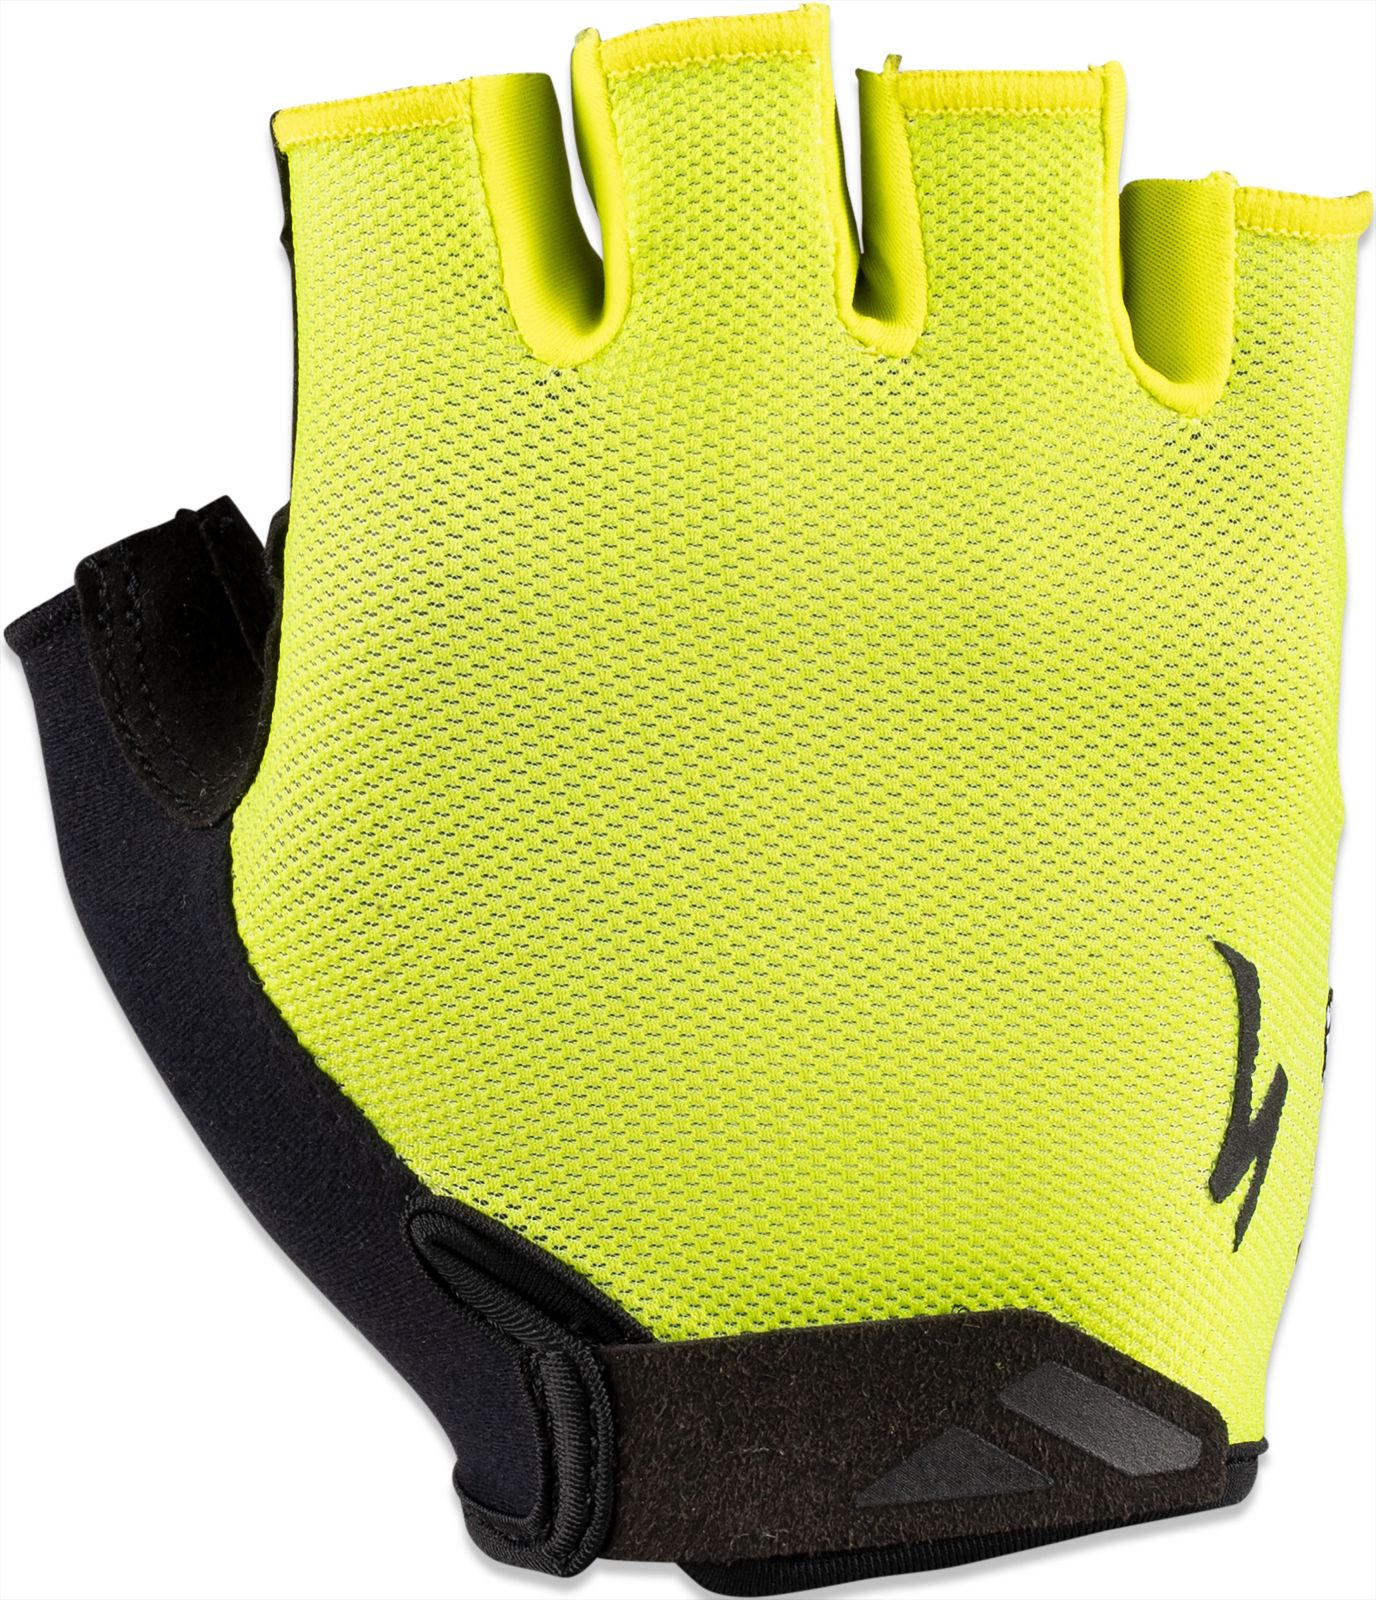 Specialized BG Sport Gel Glove SF - hyper green M